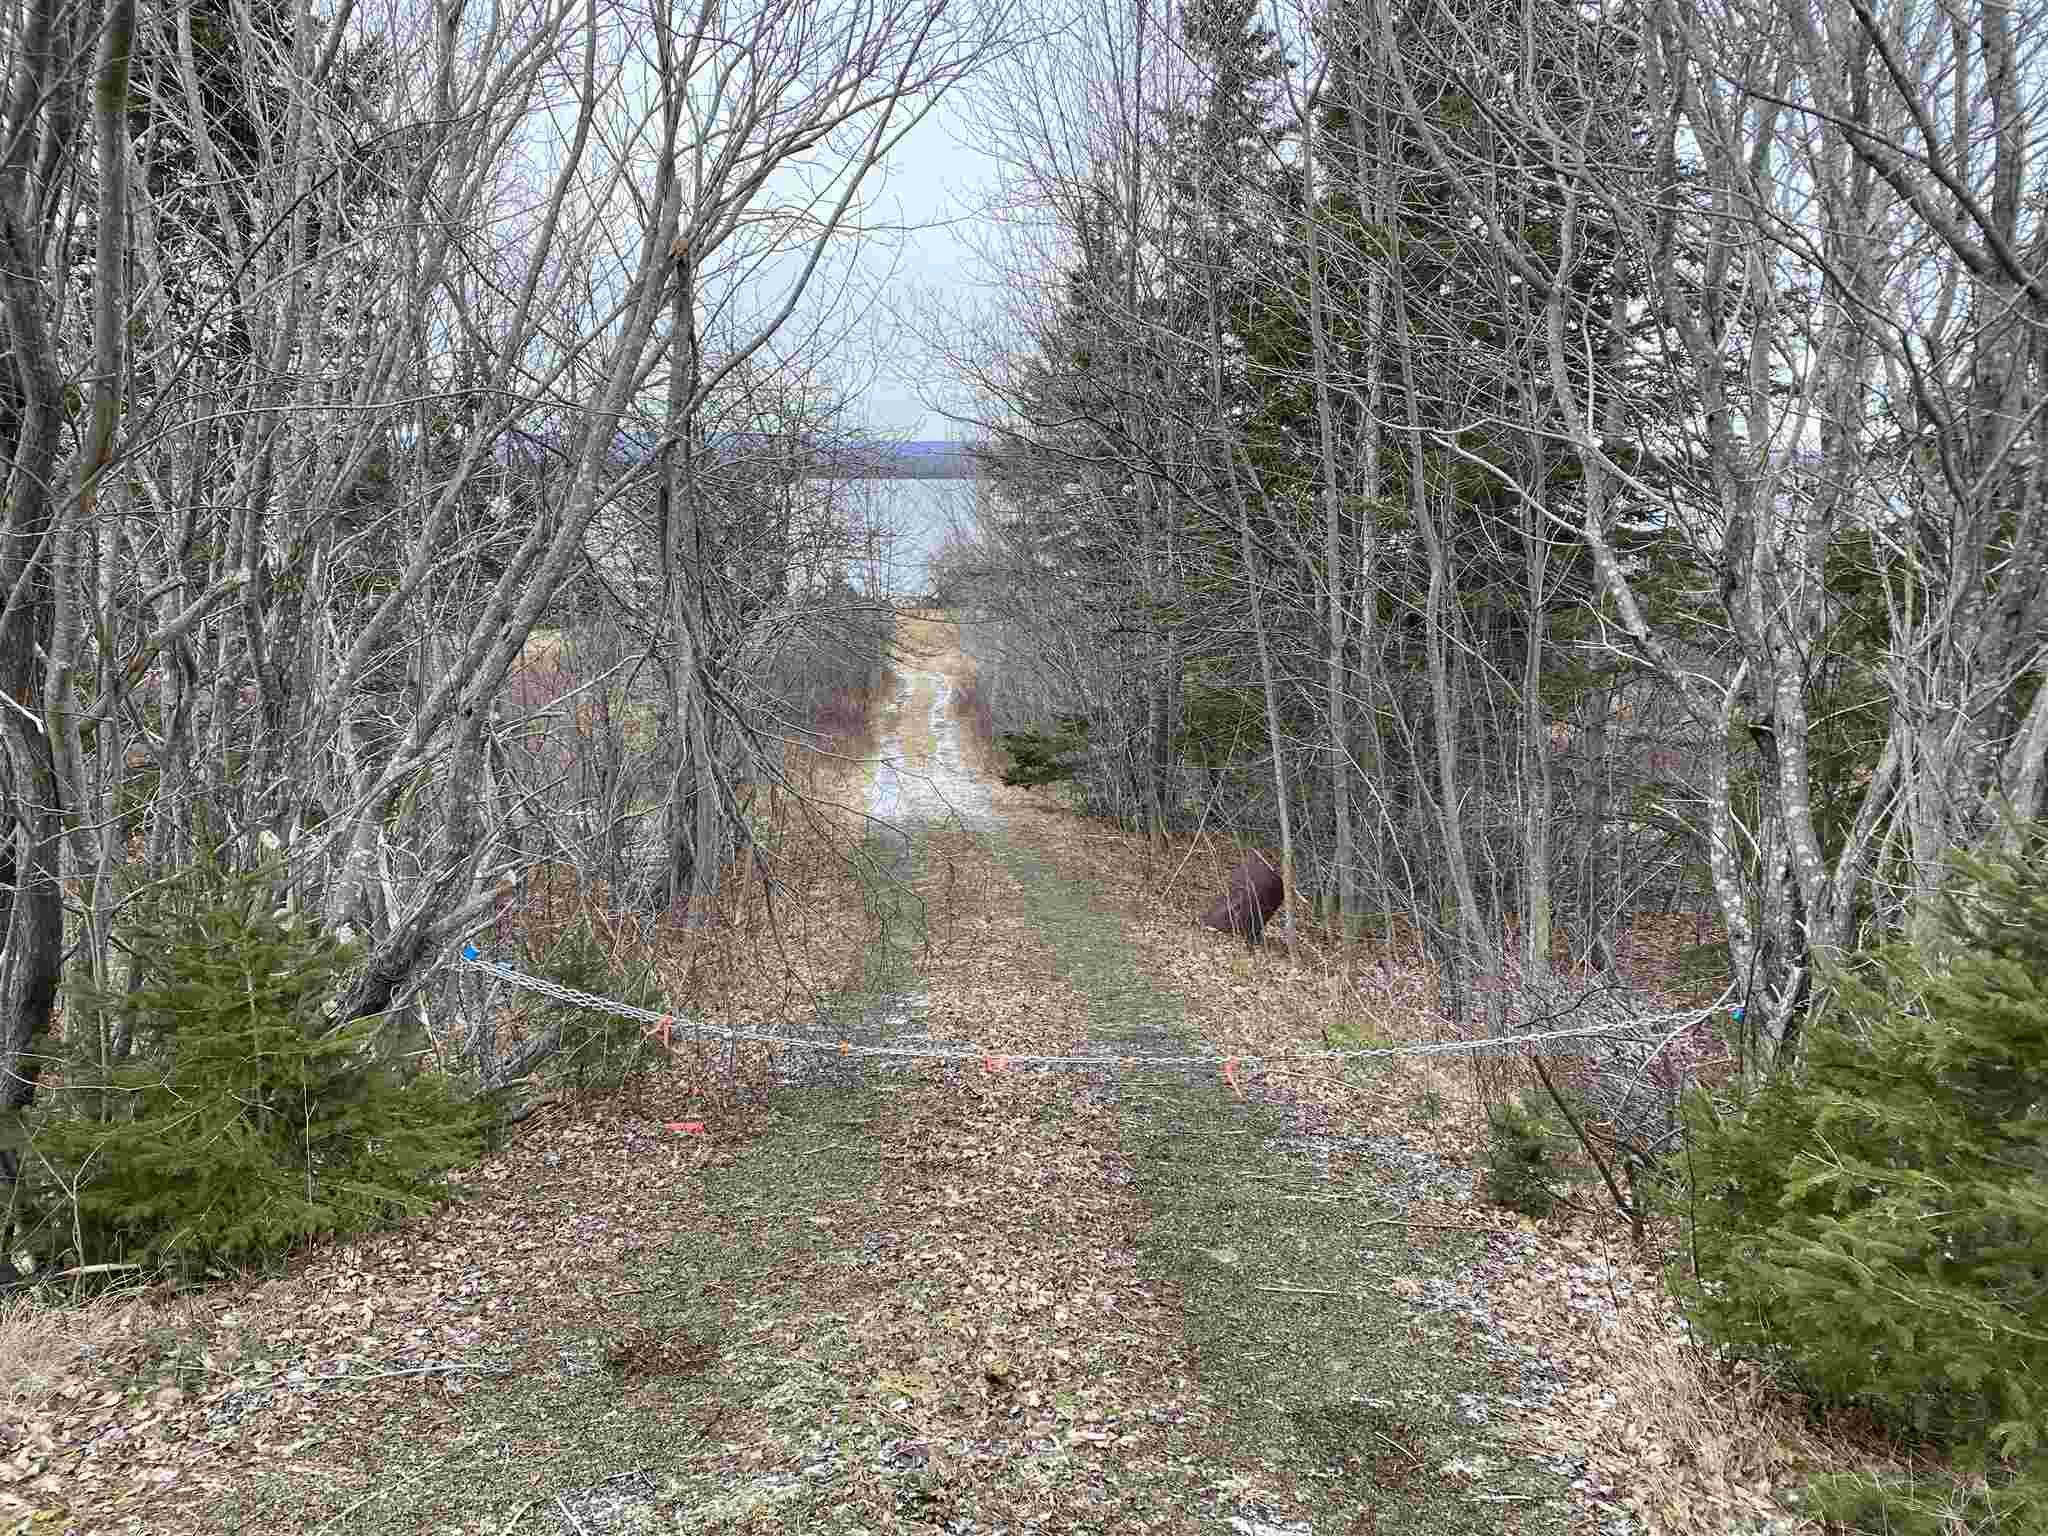 Photo 8: Photos: 8080 Marble Mountain Road in Malagawatch: 306-Inverness County / Inverness & Area Vacant Land for sale (Highland Region)  : MLS®# 202101037